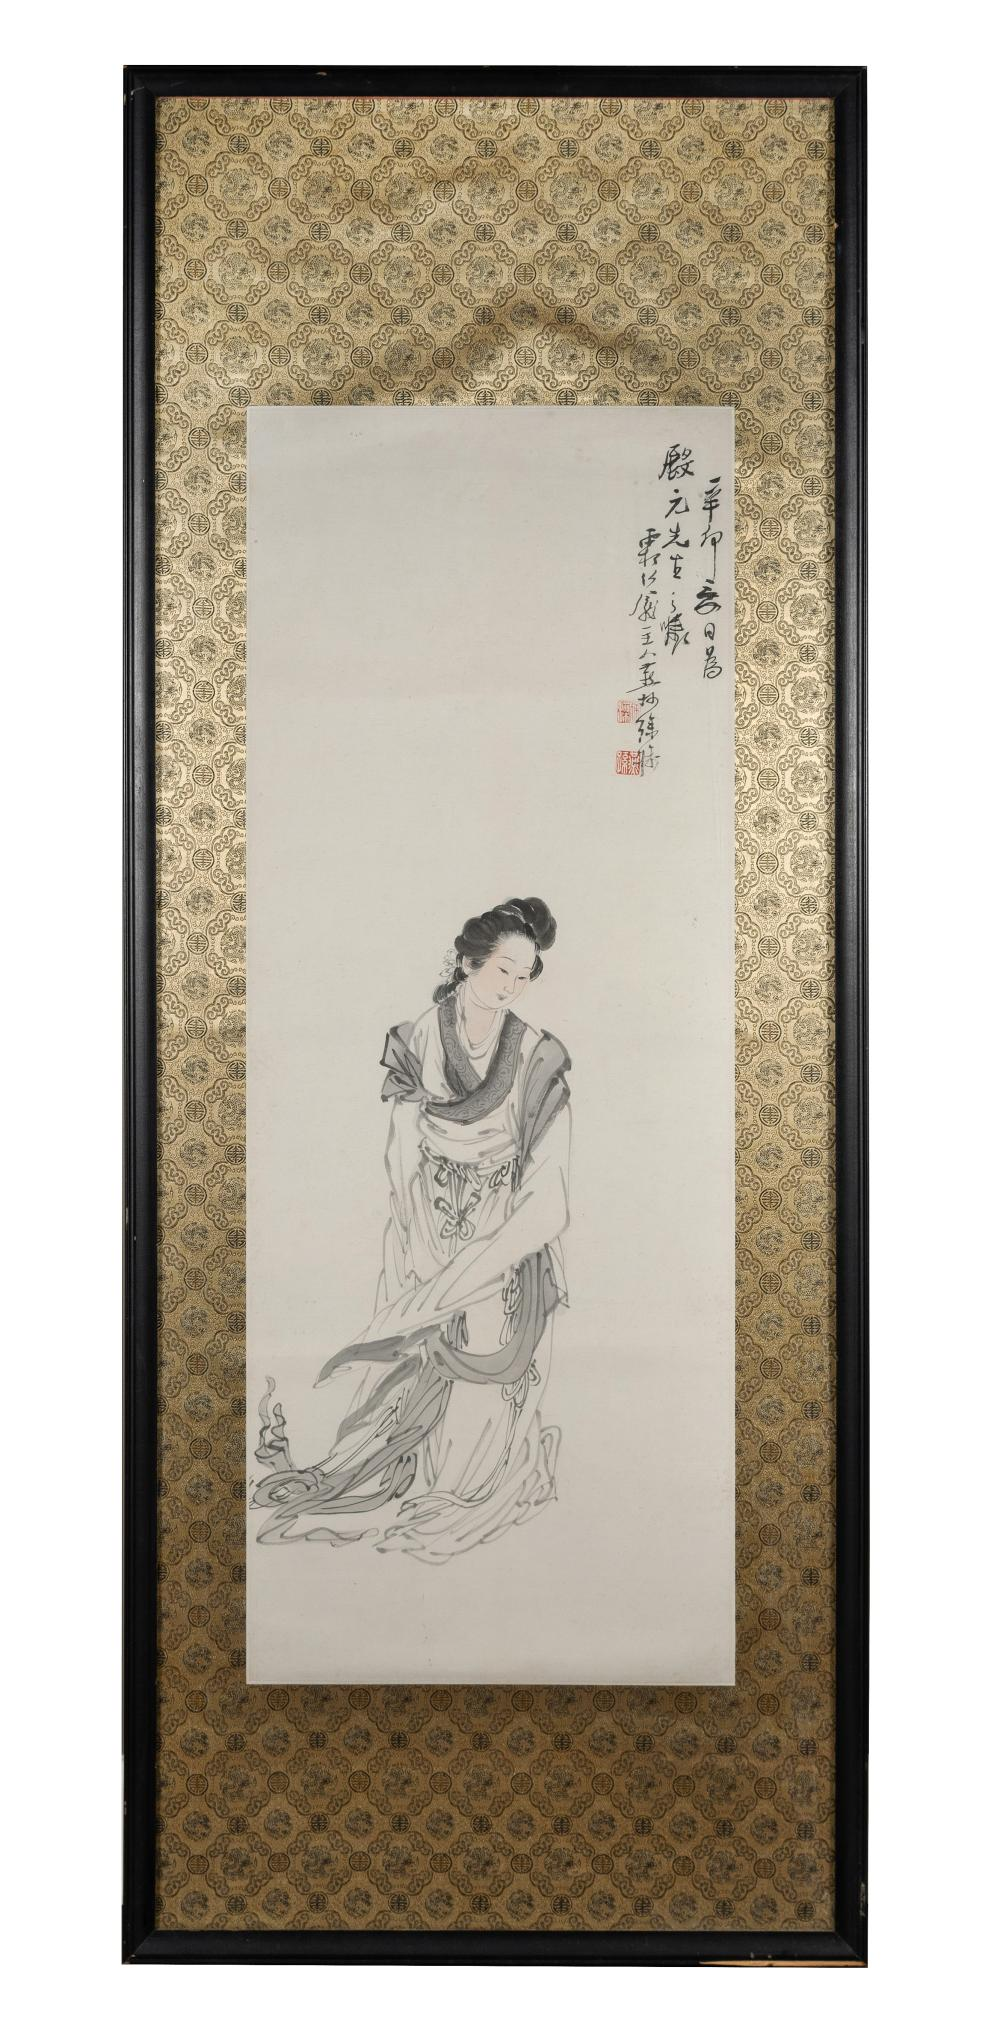 FRAMED PAINTING OF COURT LADY BY XU CHAO